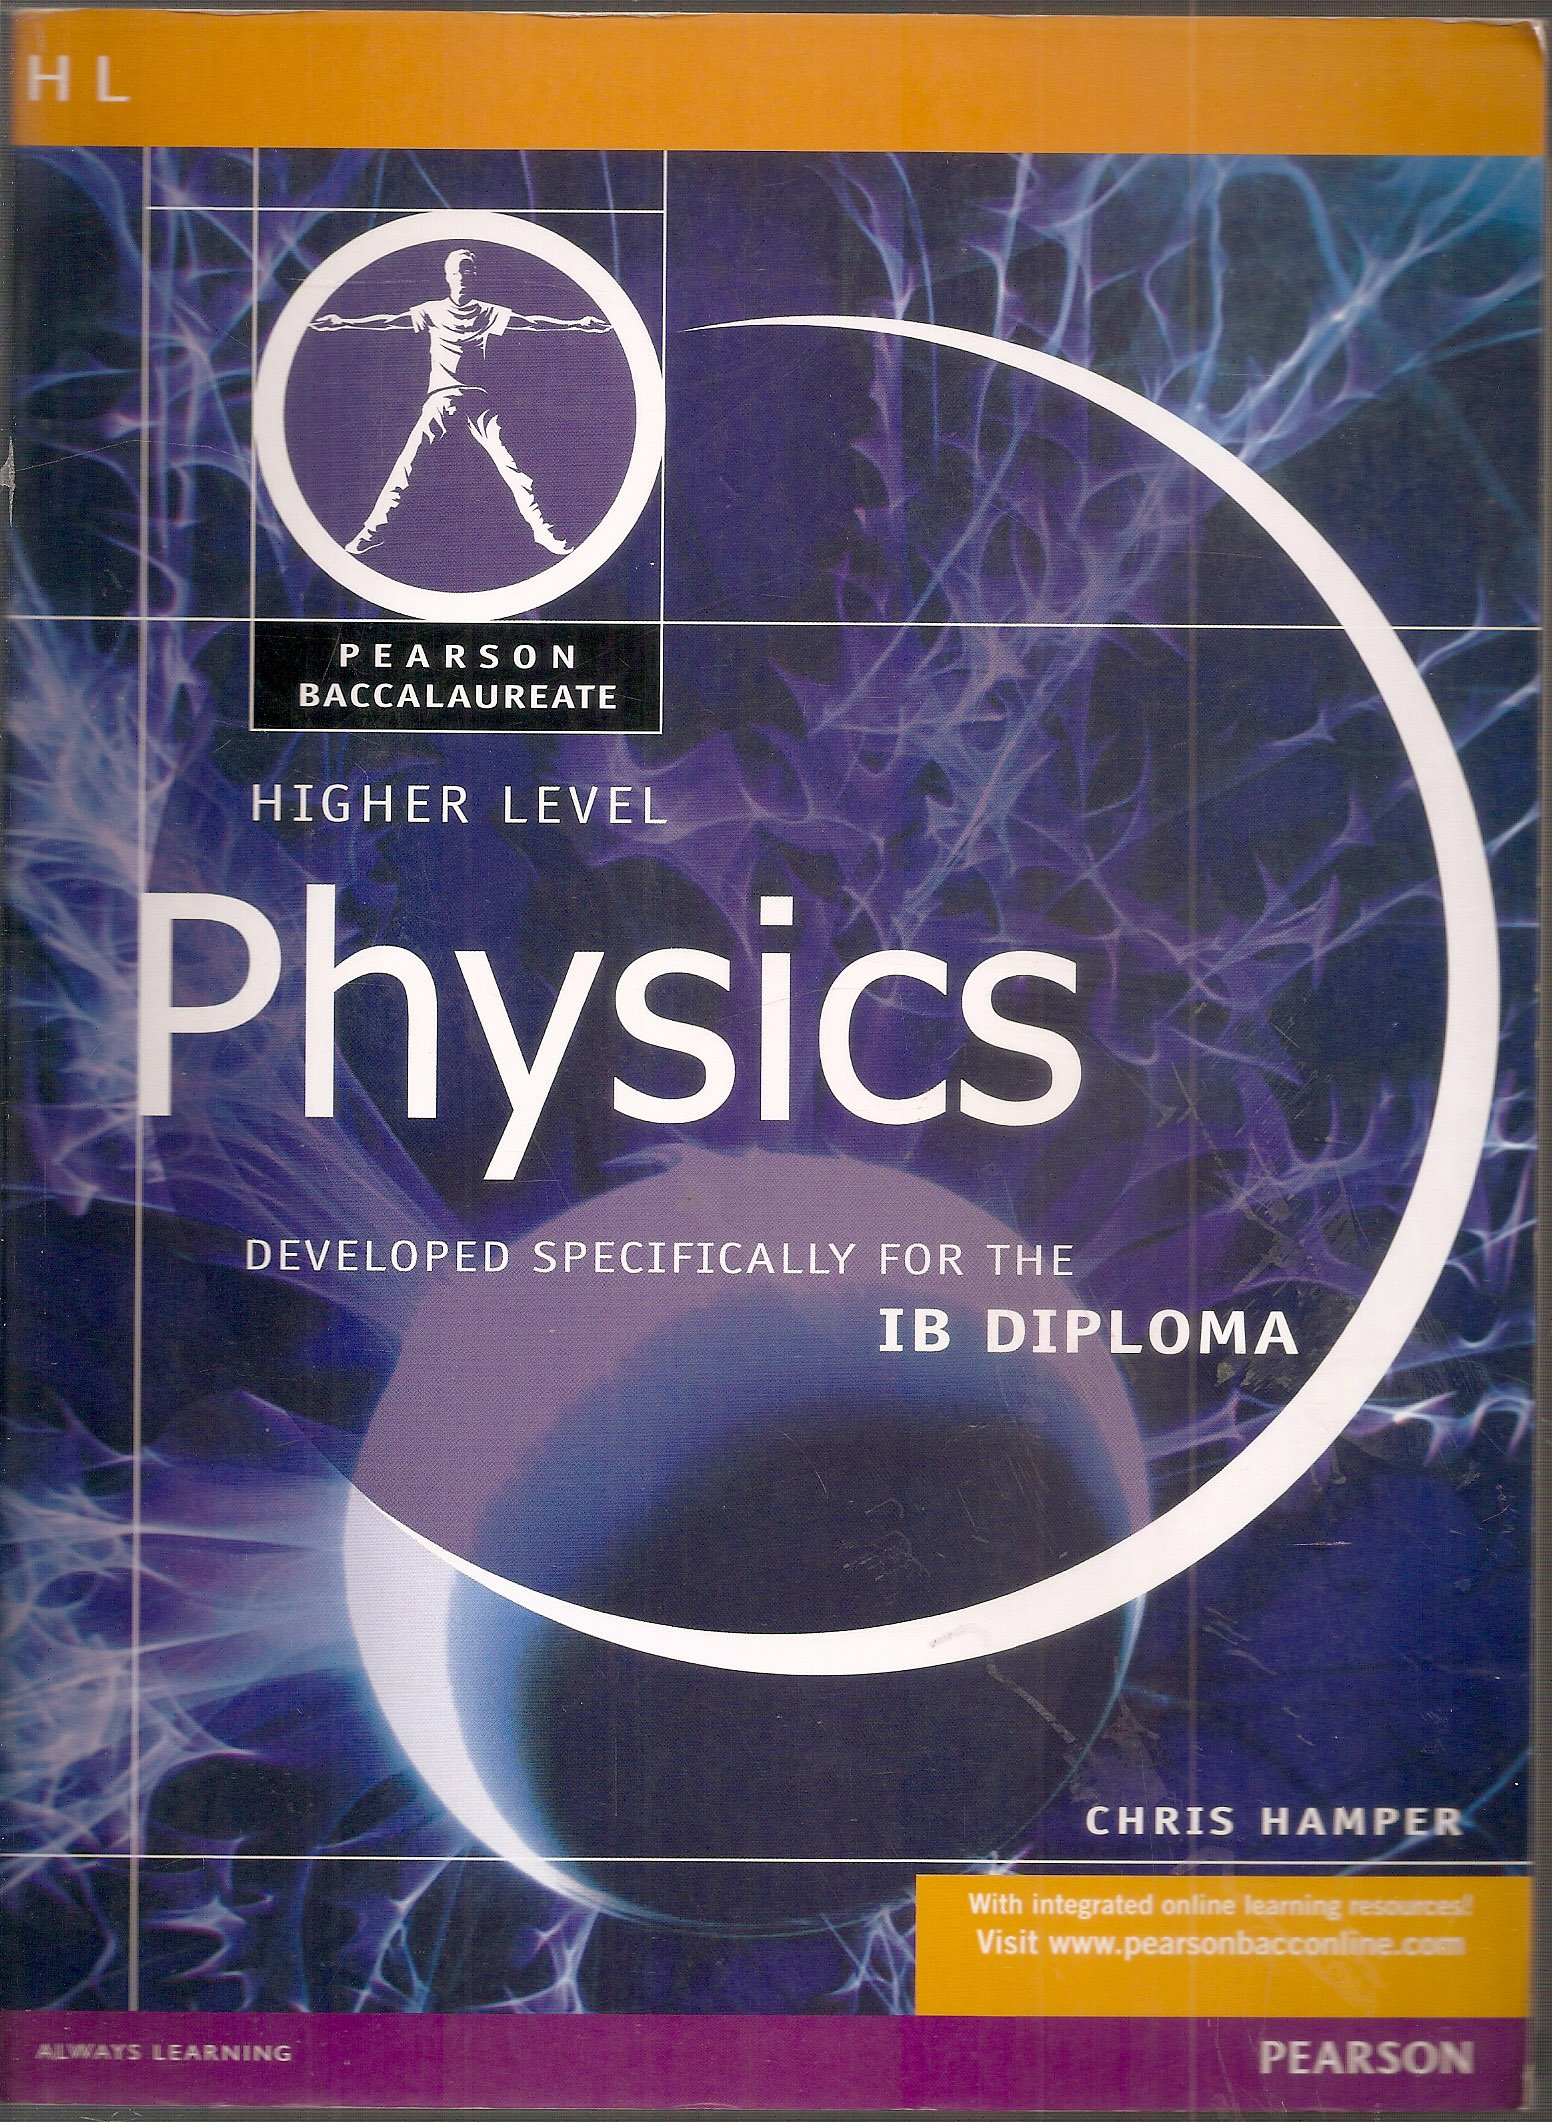 Pearson Baccalaureate: Higher Level Physics for the IB